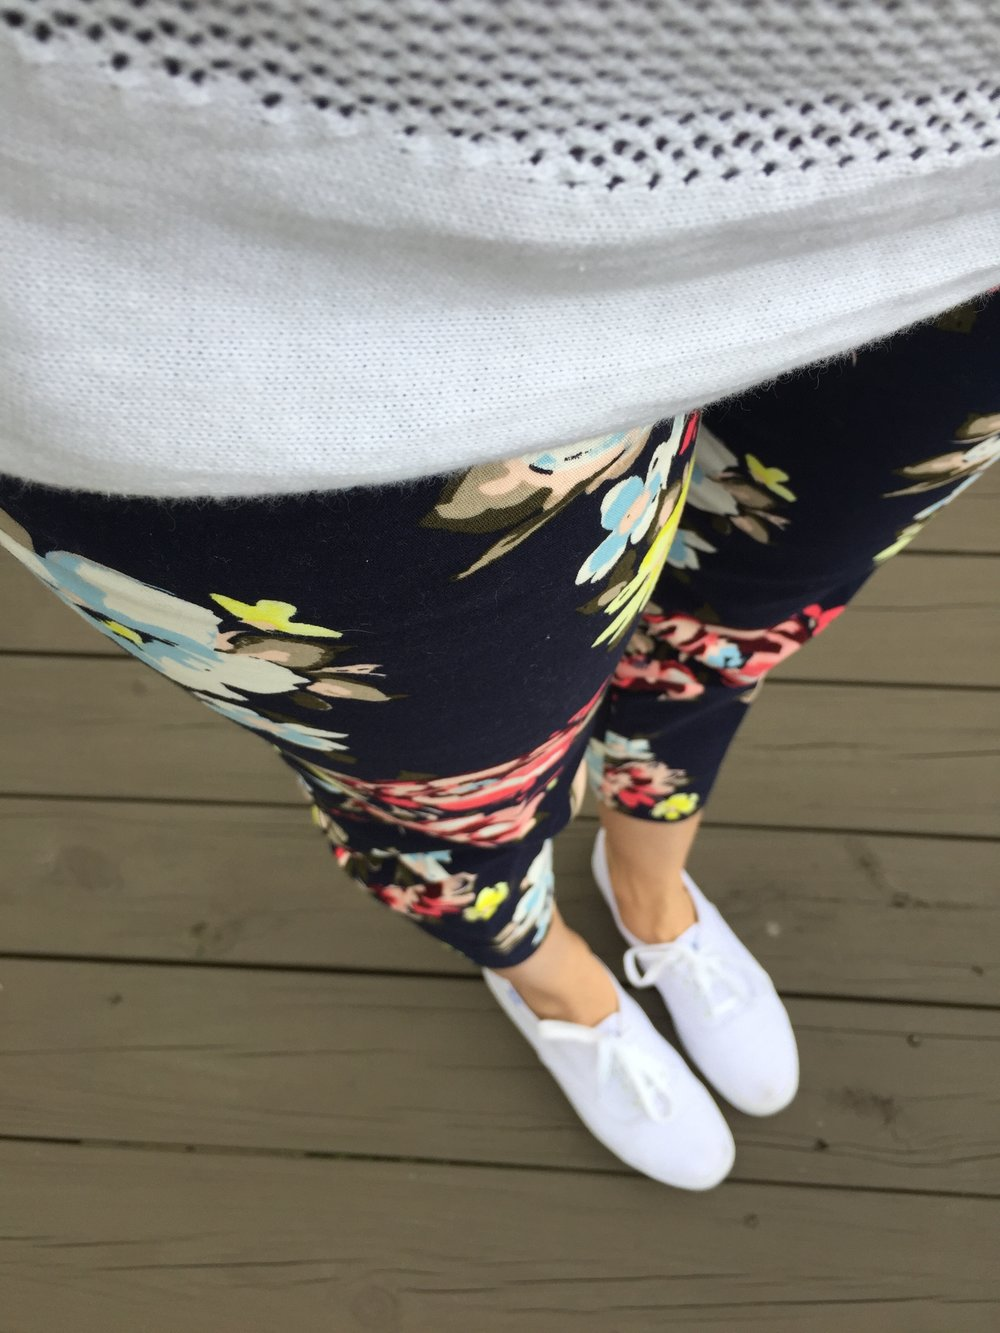 BBCA Day 28: Statement Pants